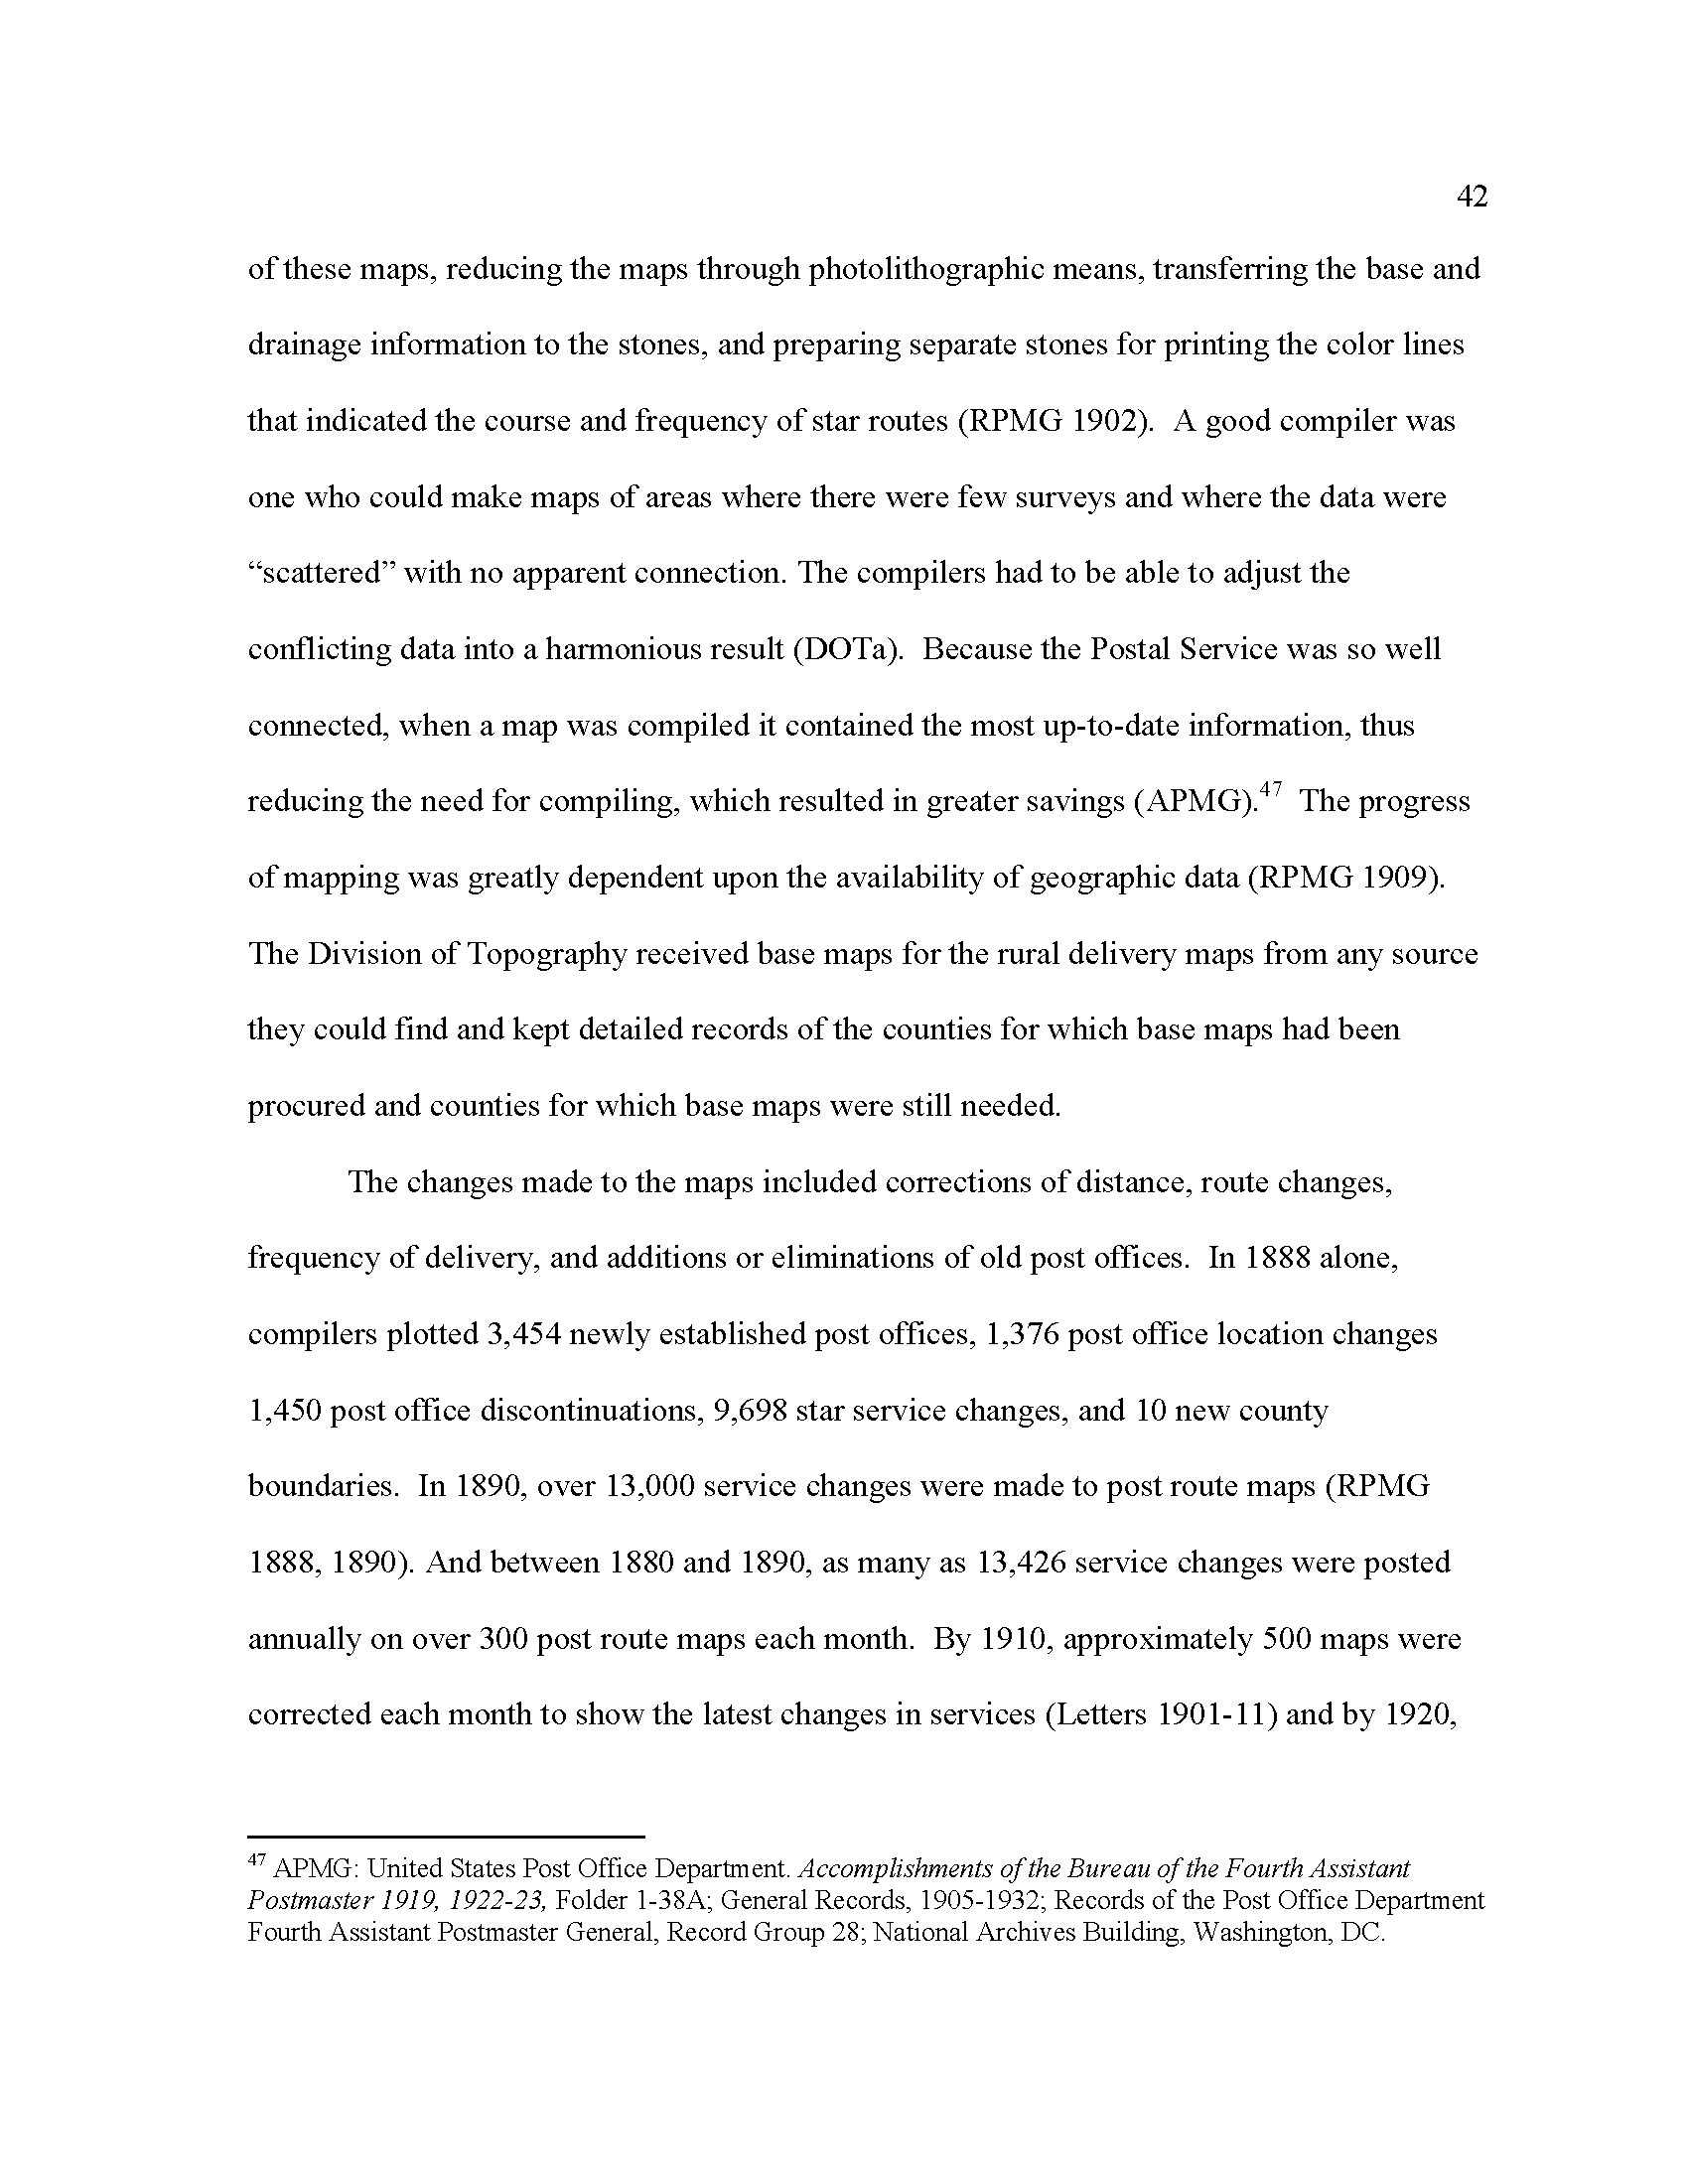 Thesis Final_Page_046.png